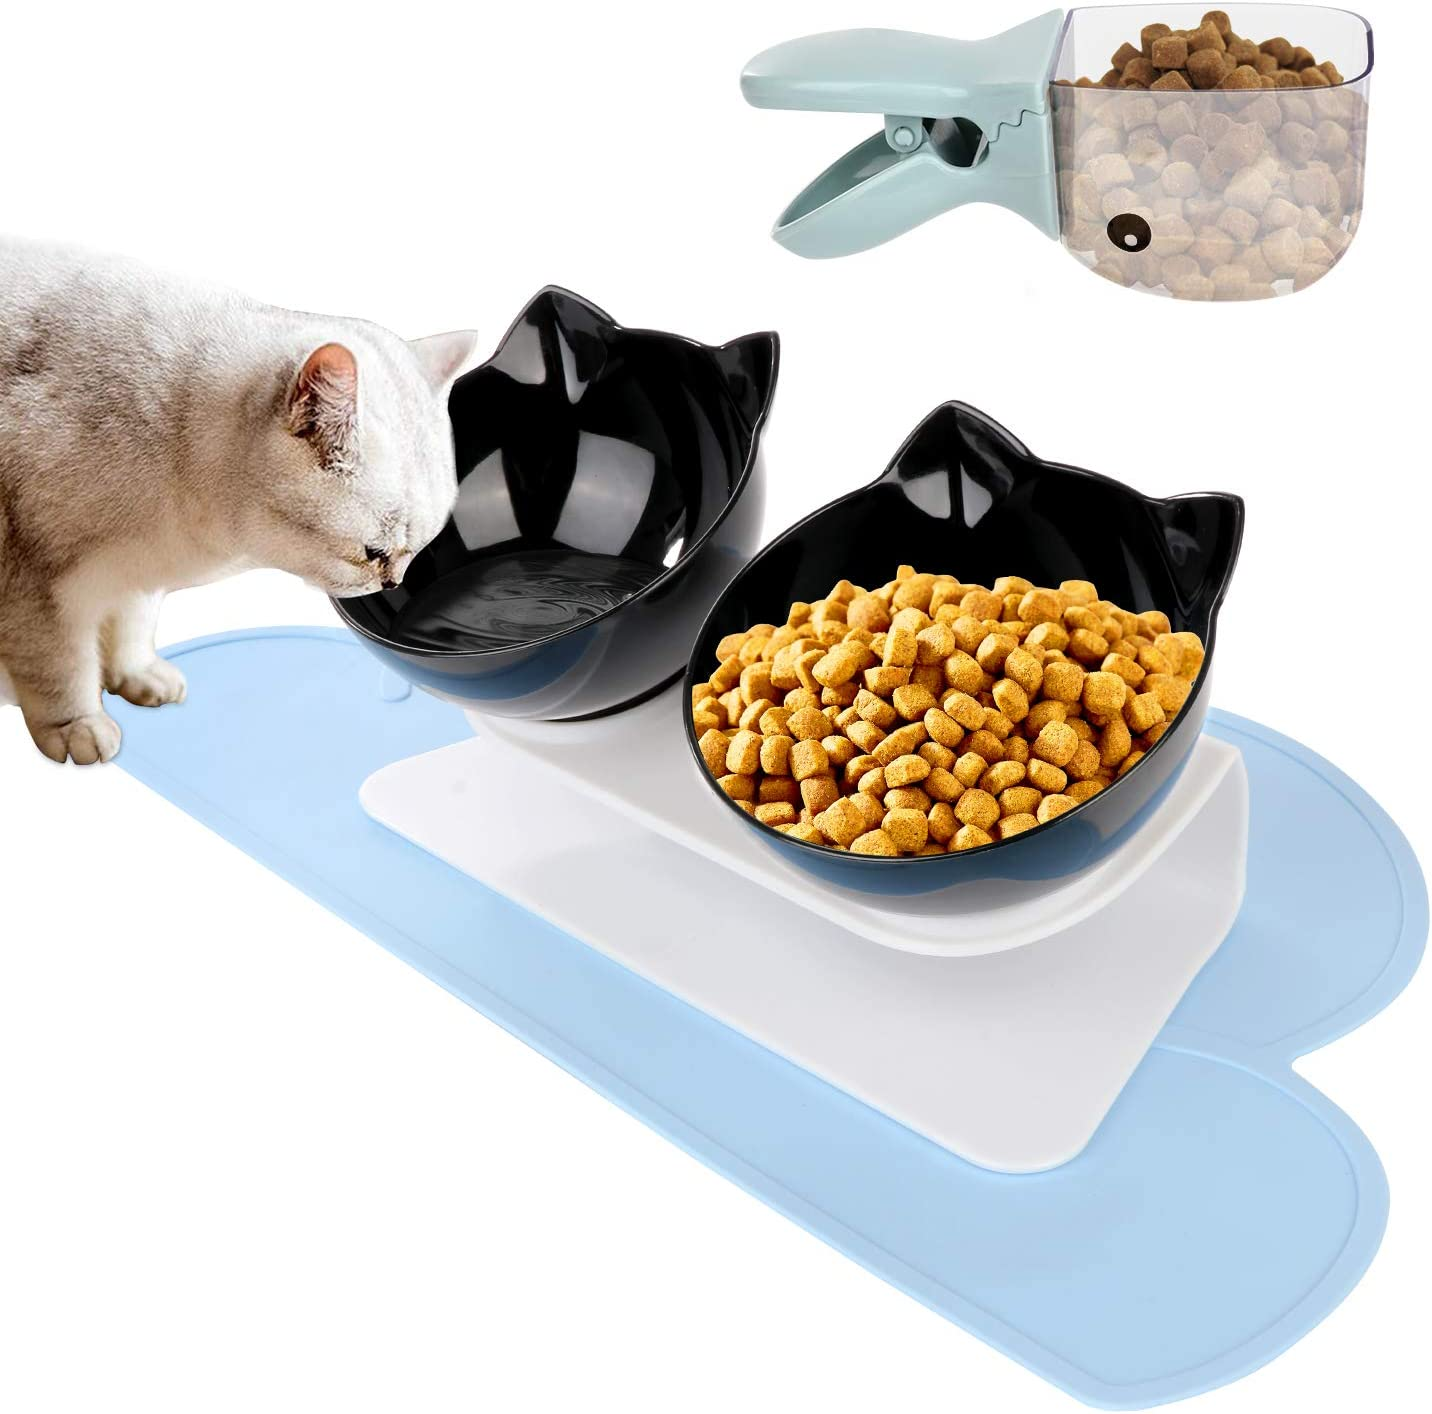 Vikedi Elevated Double Cat Bowl with Feeding Mat and Spoon, Cat Food Water Bowls with Raised Stand, Pet Feeding Bowl | 15° Tilted Raised Pet Feeder Bowl for Cats and Small Dogs (Black)